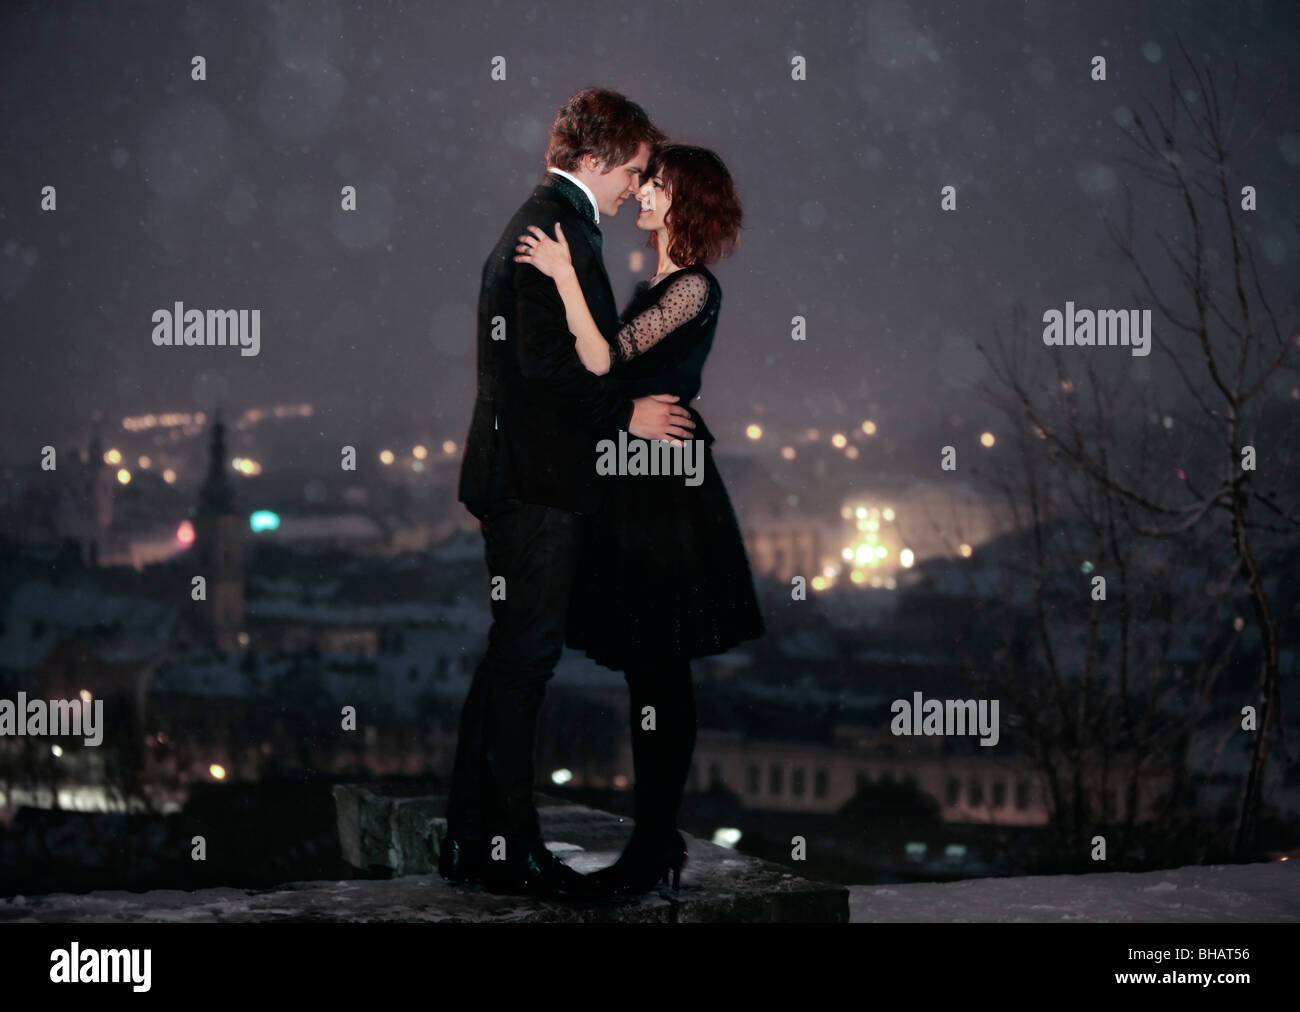 Full length profile of Romantic Couple looking into each others eyes against the city at night on valentine's - Stock Image